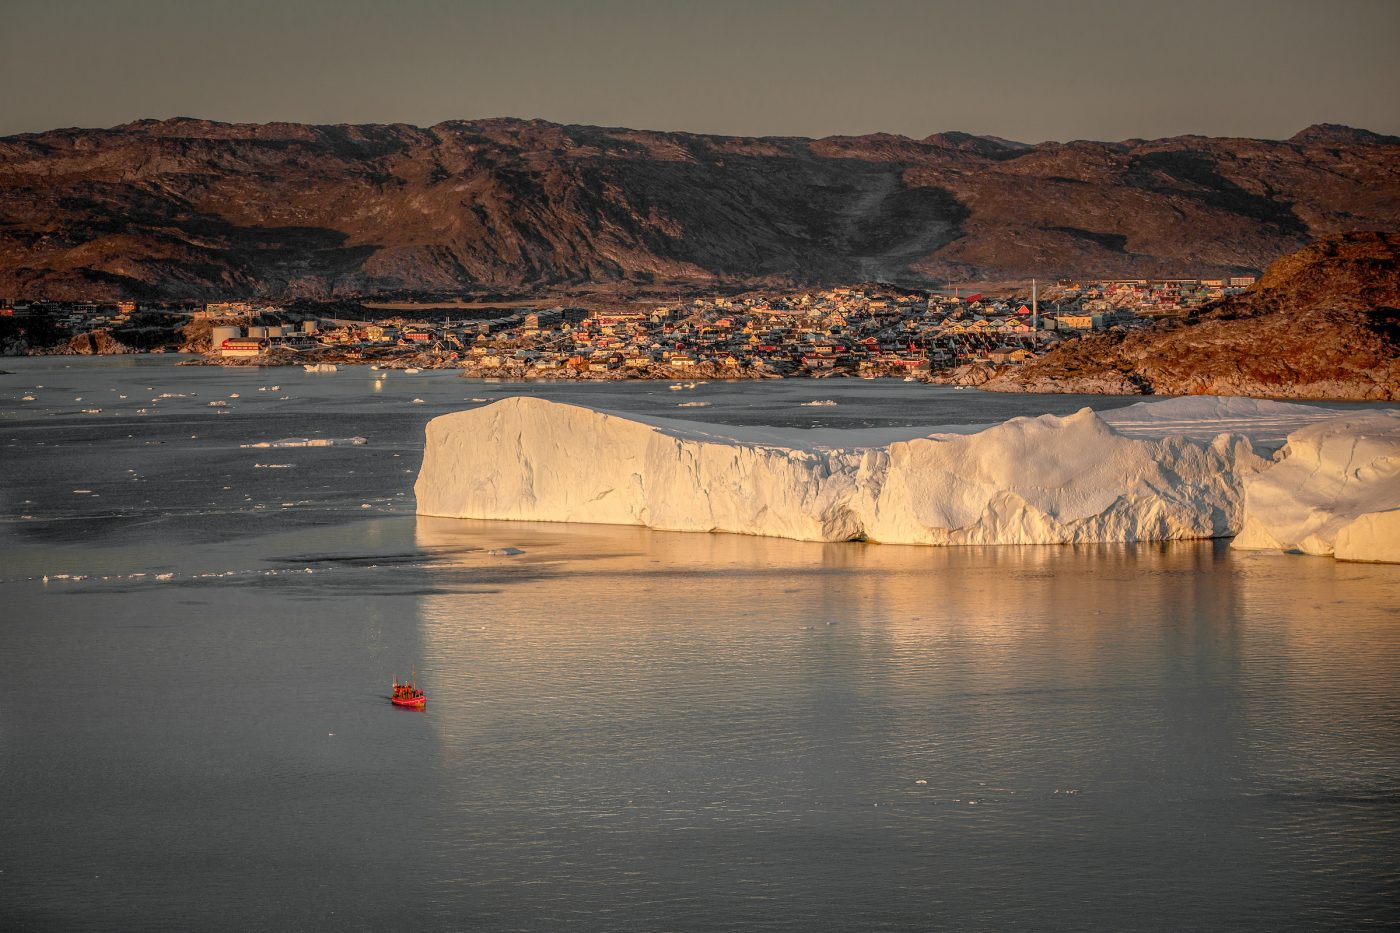 A big table iceberg near Ilulissat at the Kangia ice fjord in Greenland